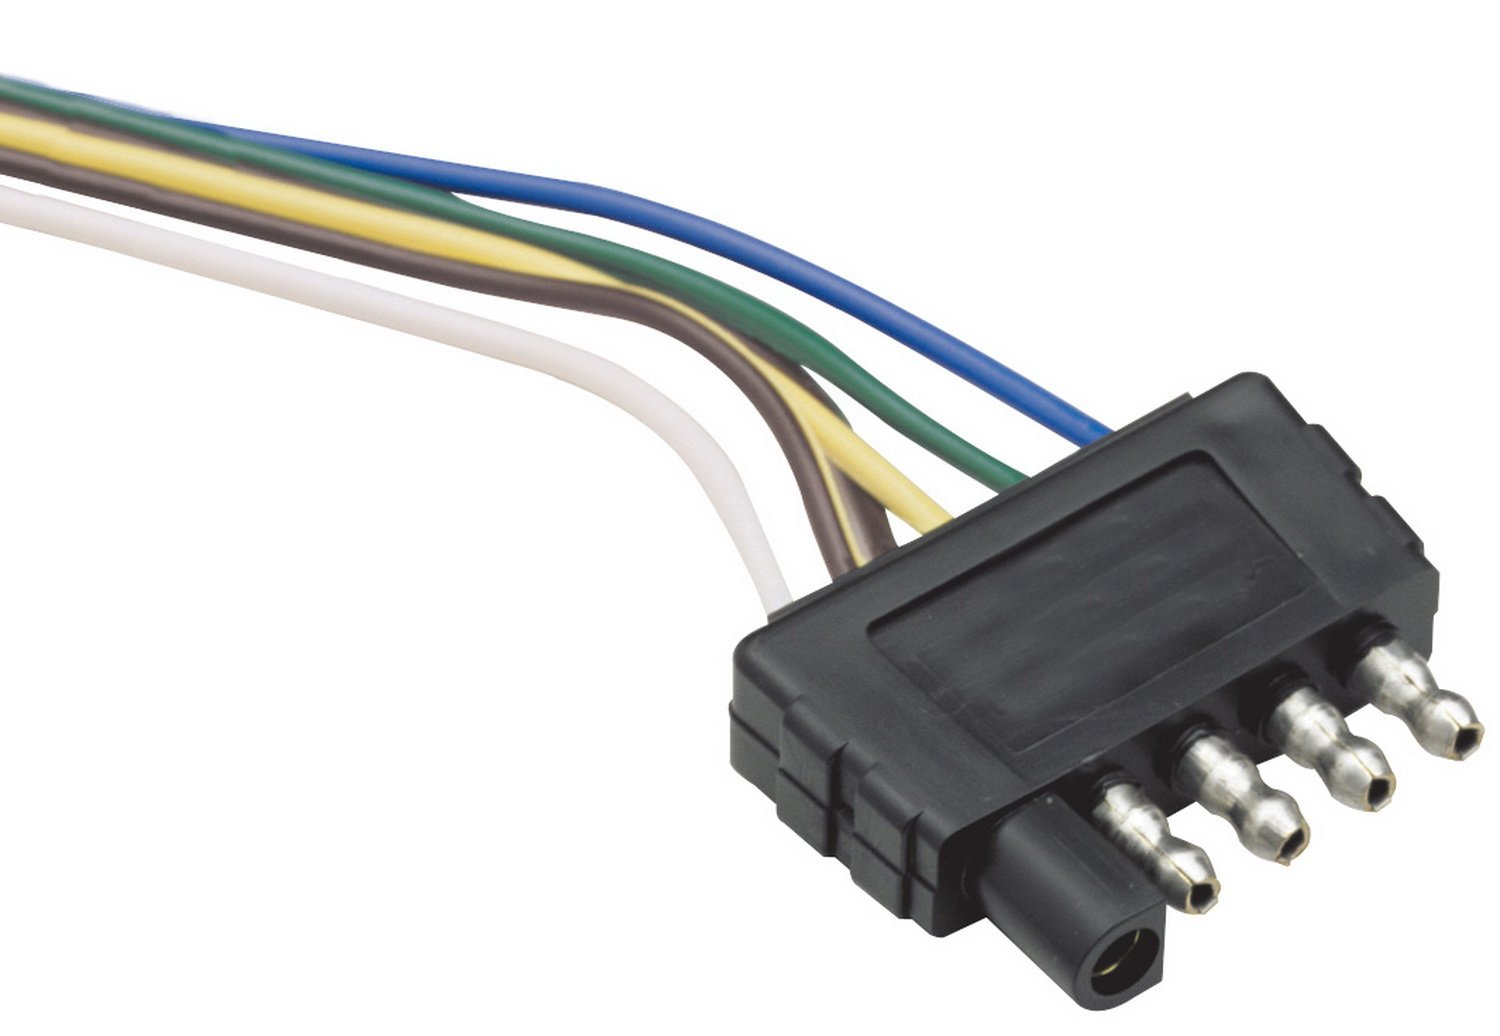 61U8 cIQMQL._SL1500_ amazon com reese towpower 85214 5 way flat connector automotive 5 way flat trailer plug wiring diagram at crackthecode.co